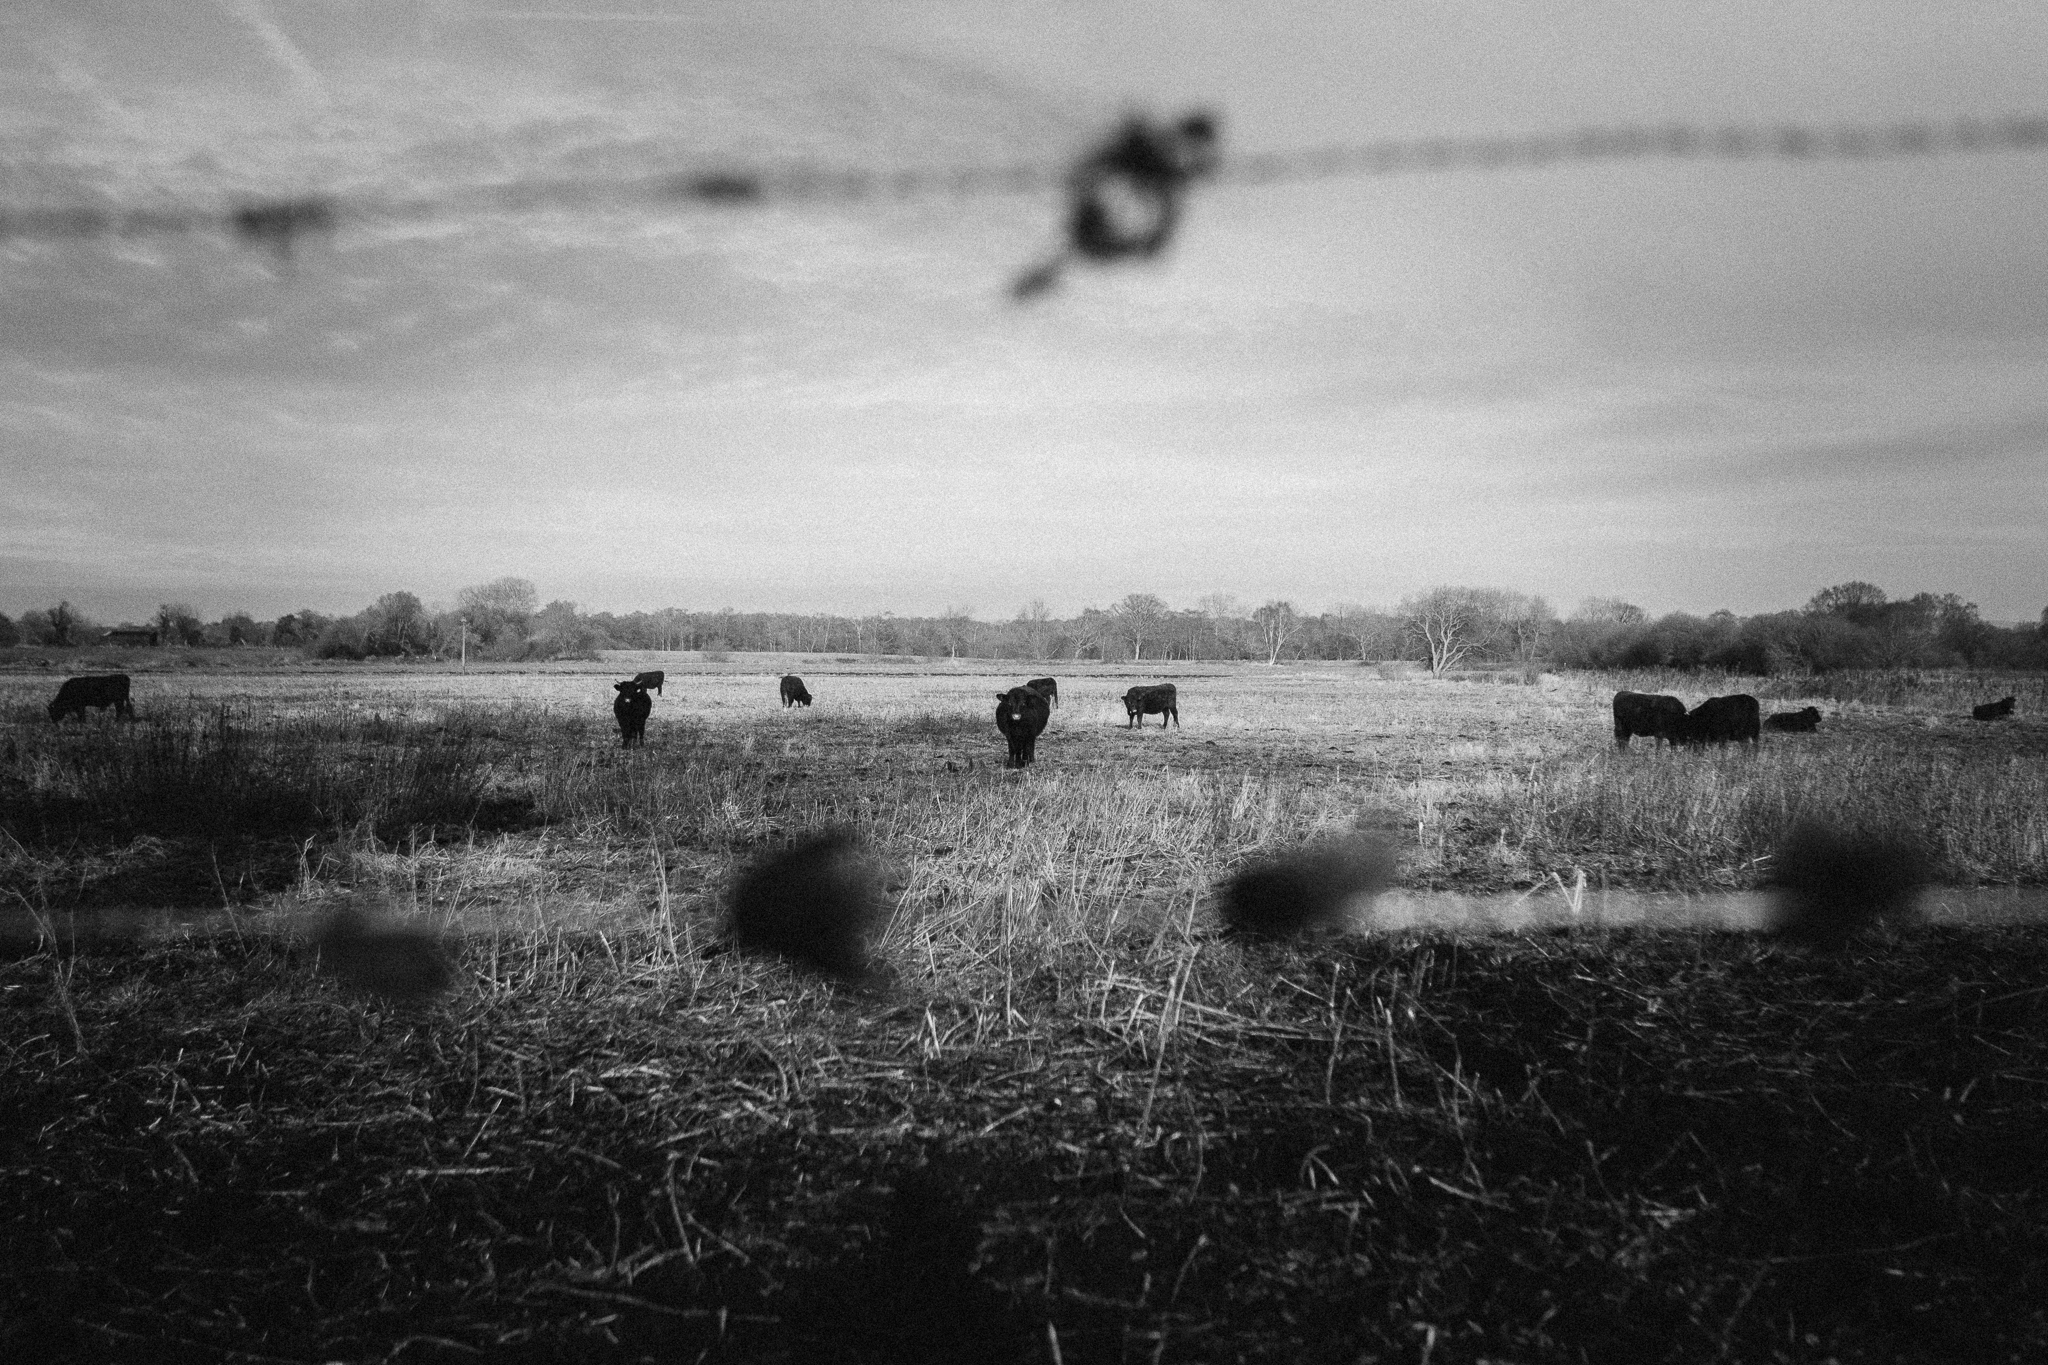 cow-wire-bw (1 of 1).jpg